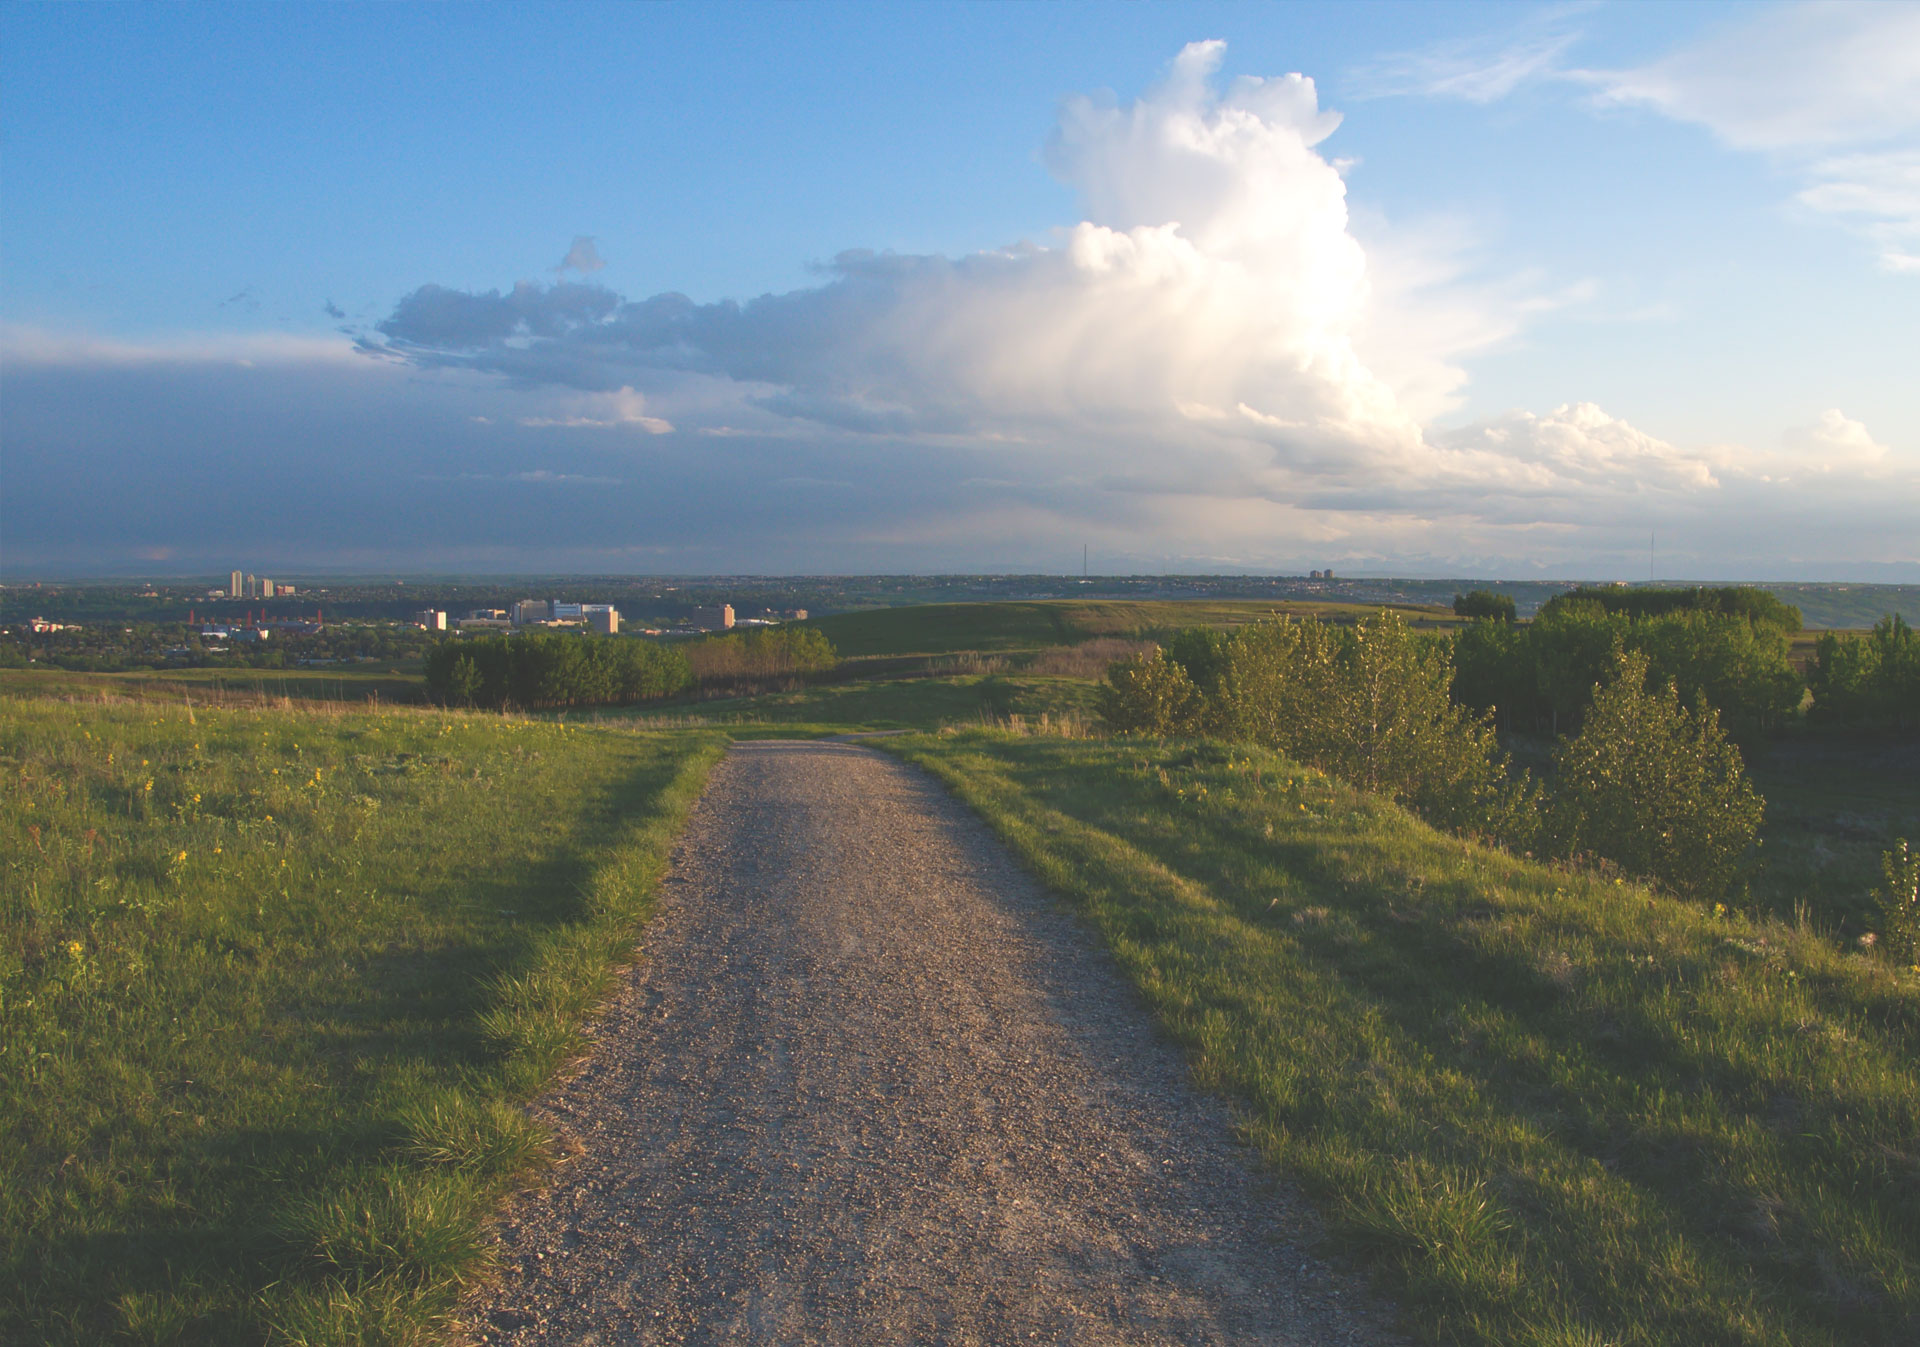 Nose Hill Park provides great views of the city